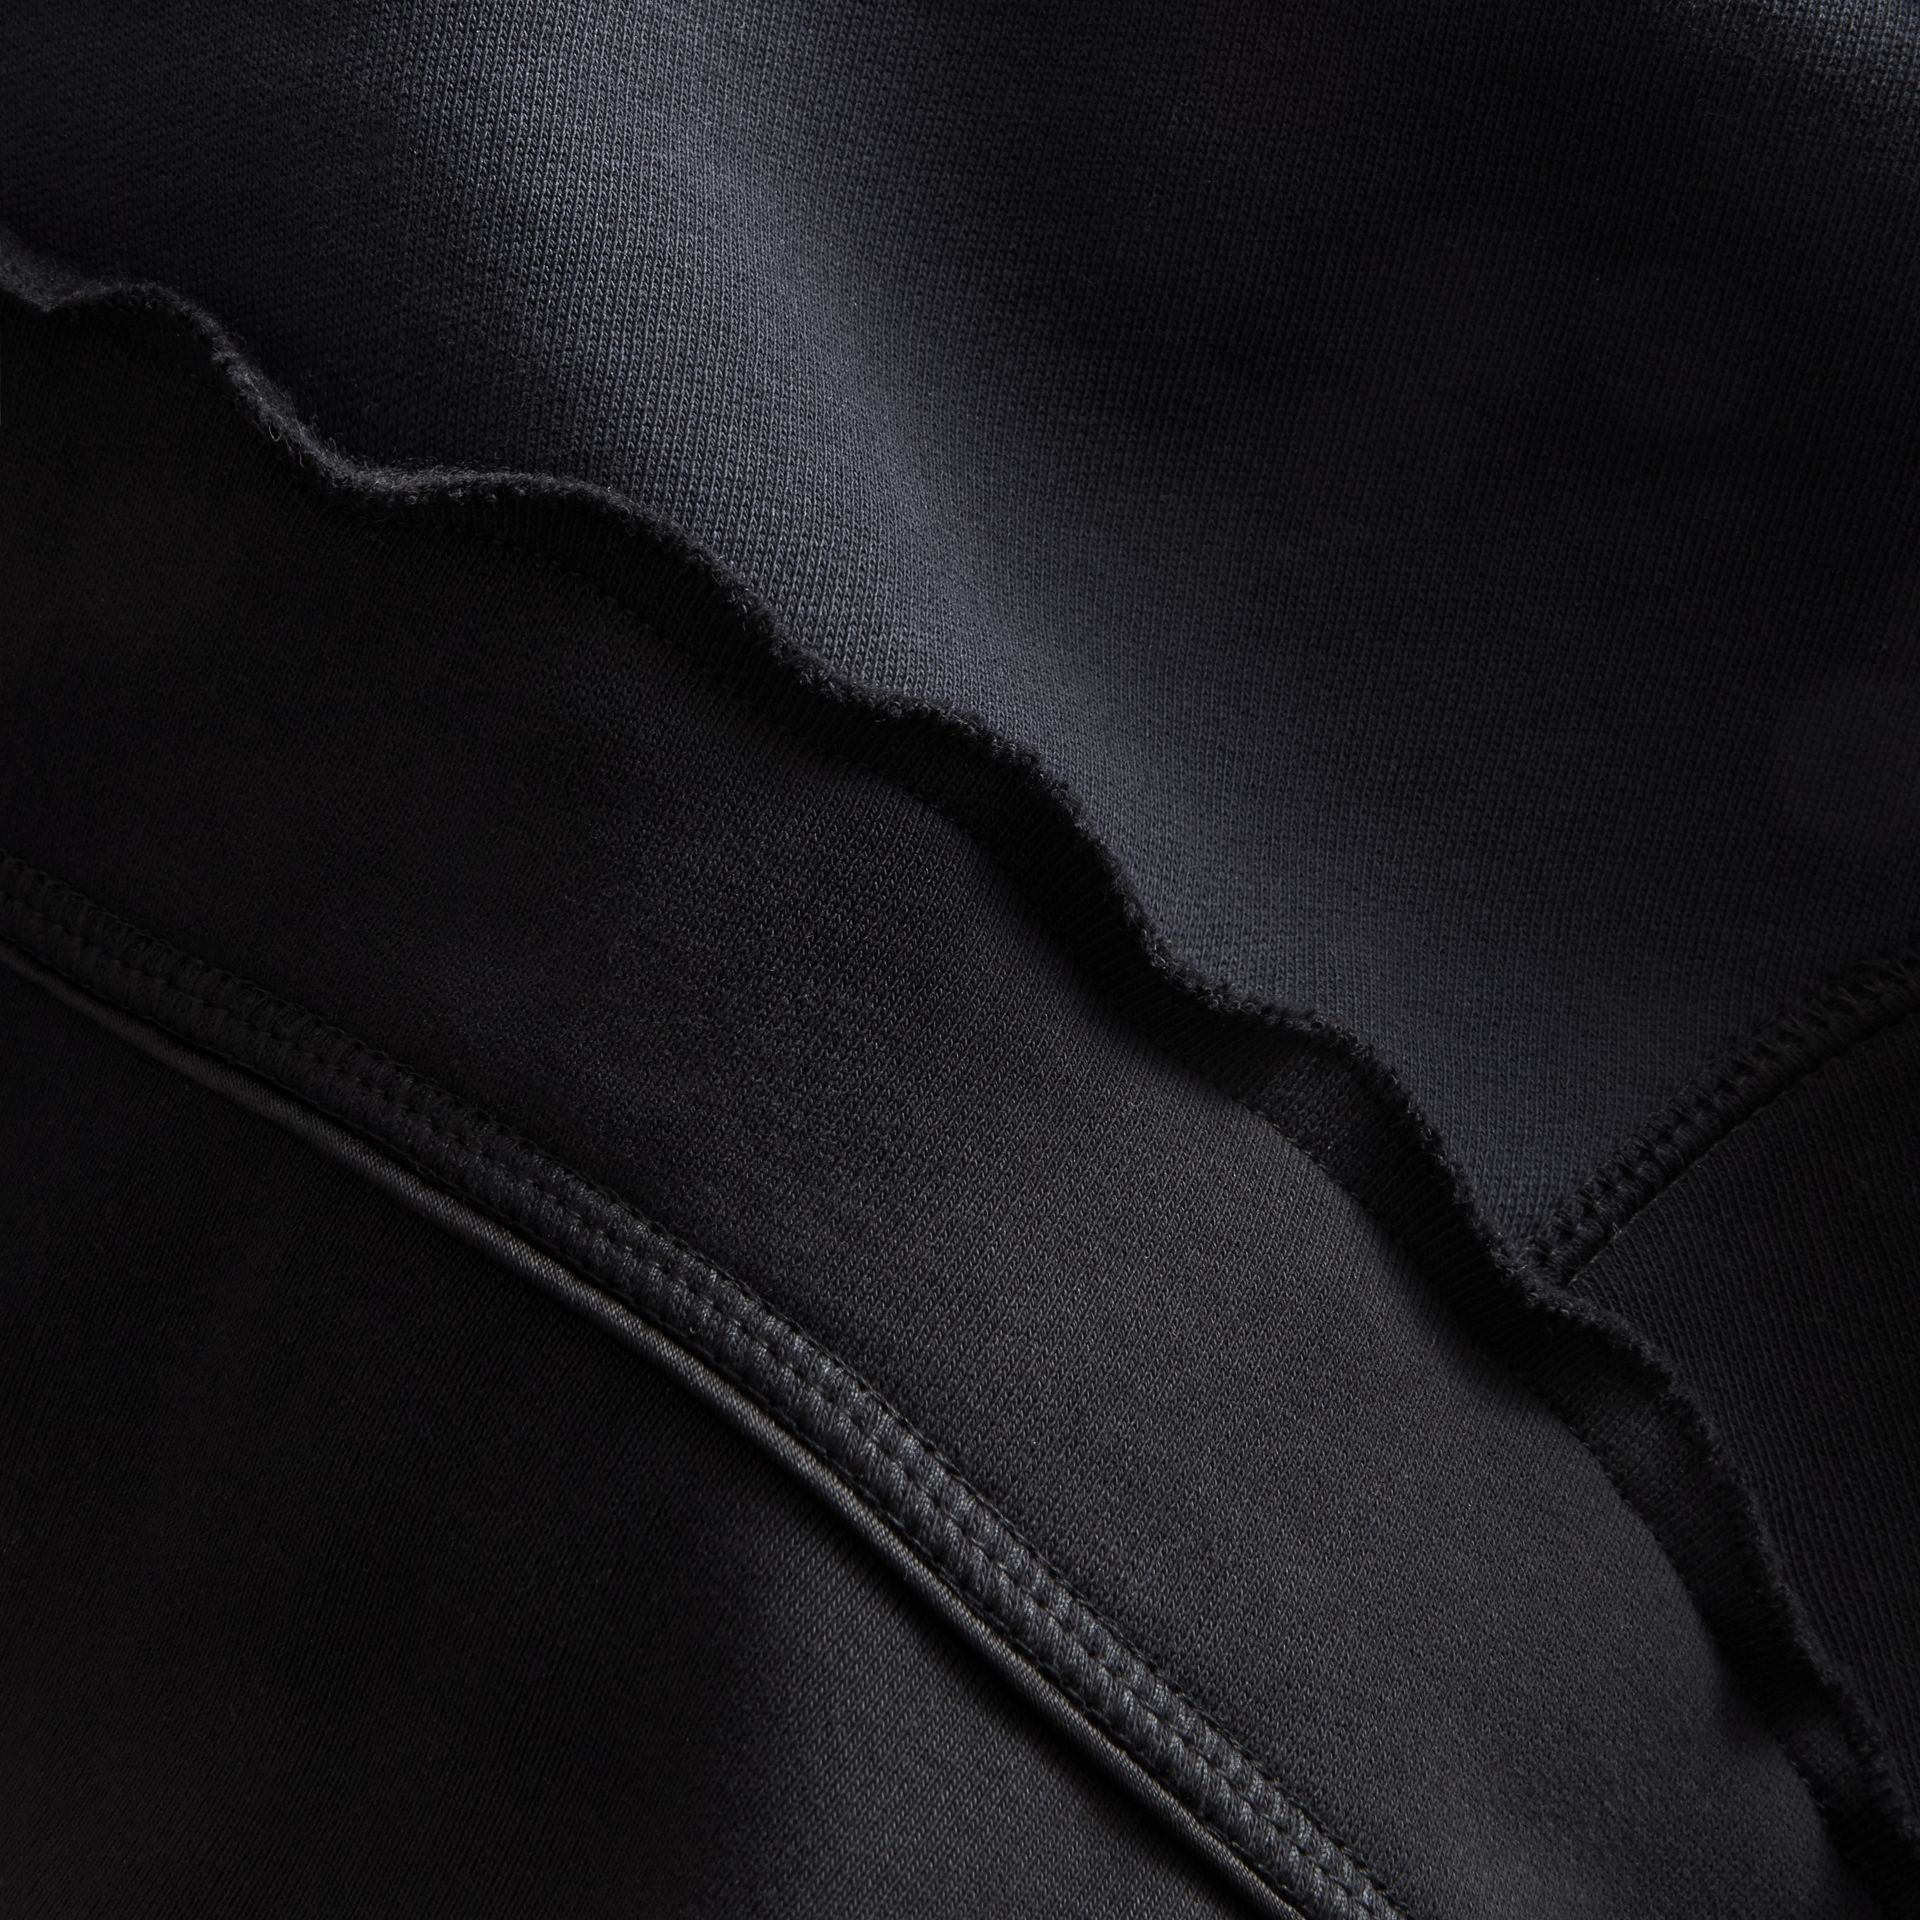 Sculptured-sleeve Seam Detail Sweatshirt in Black - Women | Burberry - gallery image 2